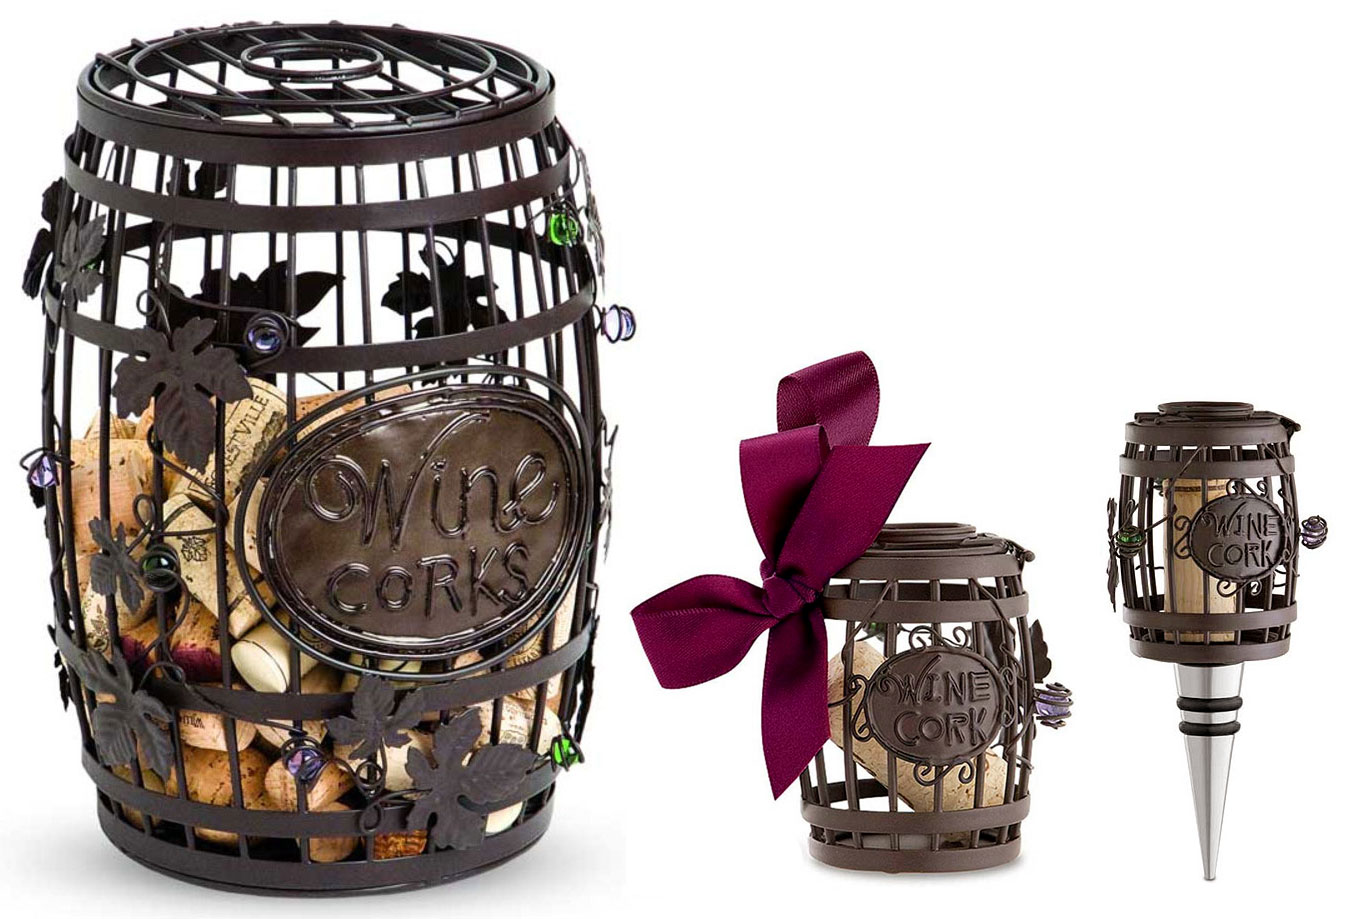 Wine Barrel Cork Cages